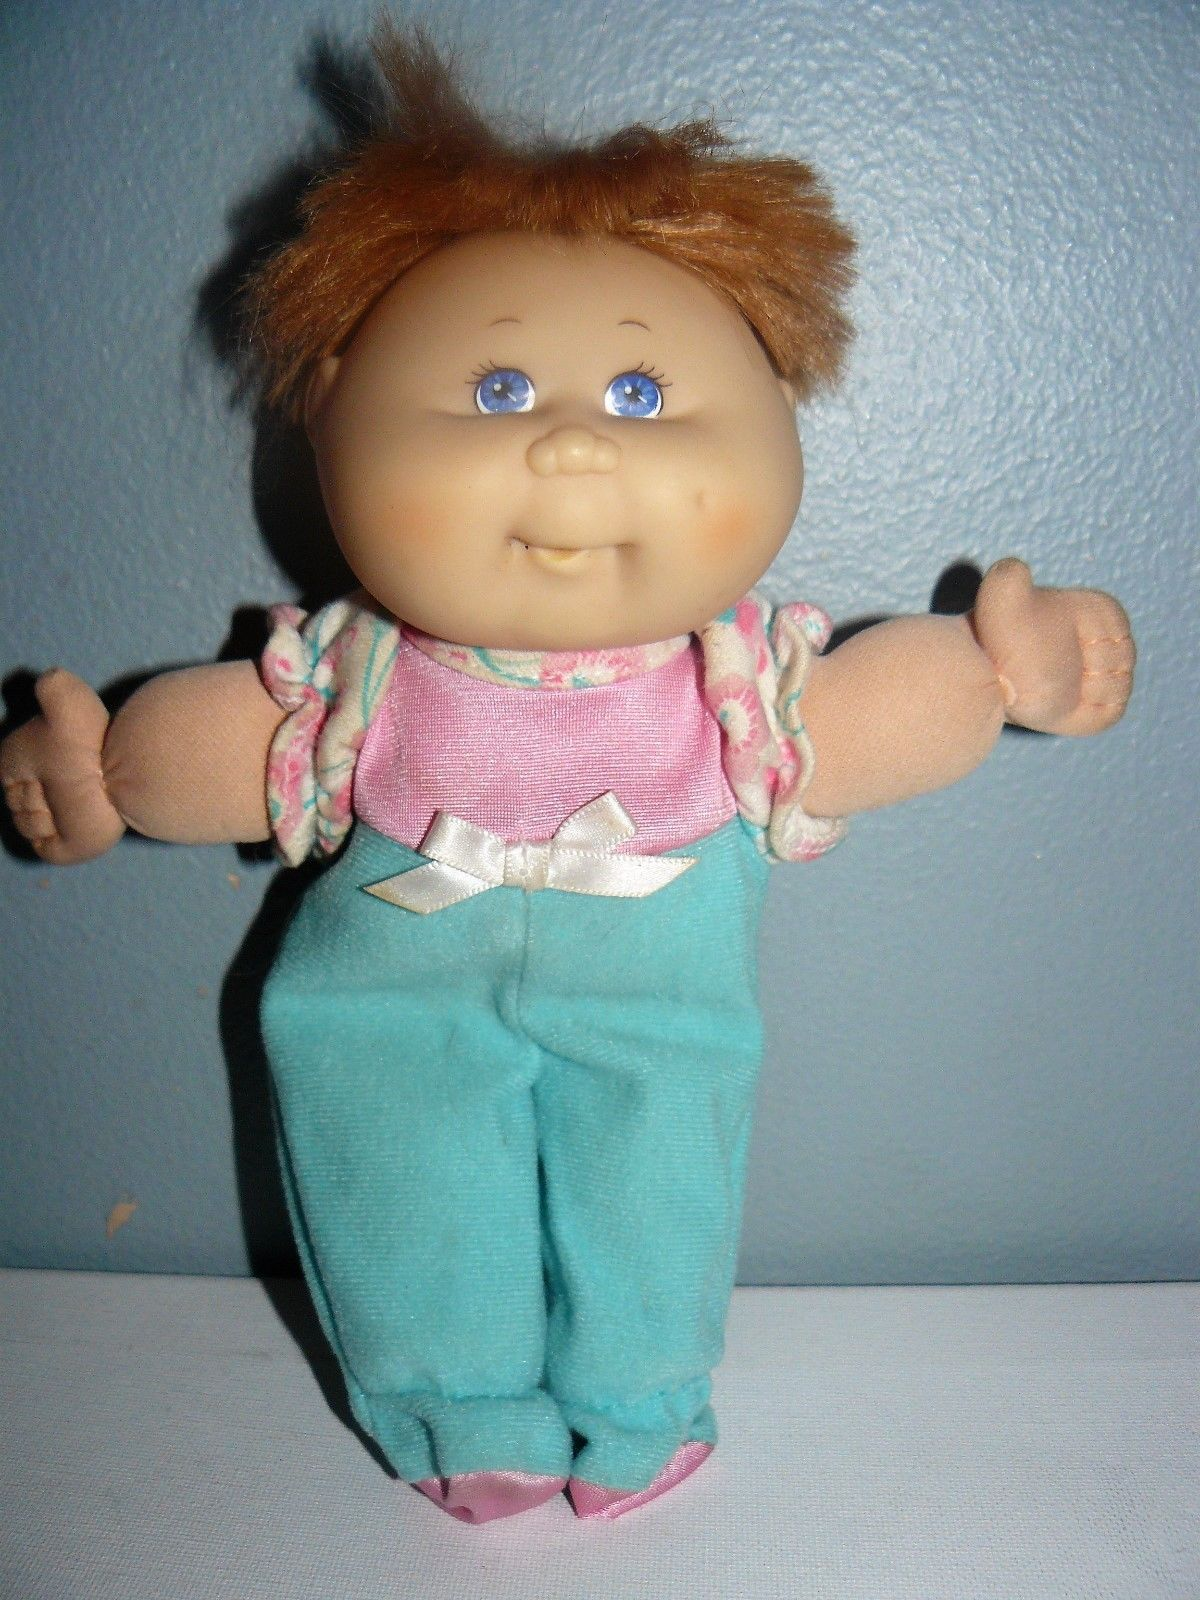 Mattel First Edition 1995 Cabbage Patch Doll and 50 similar items